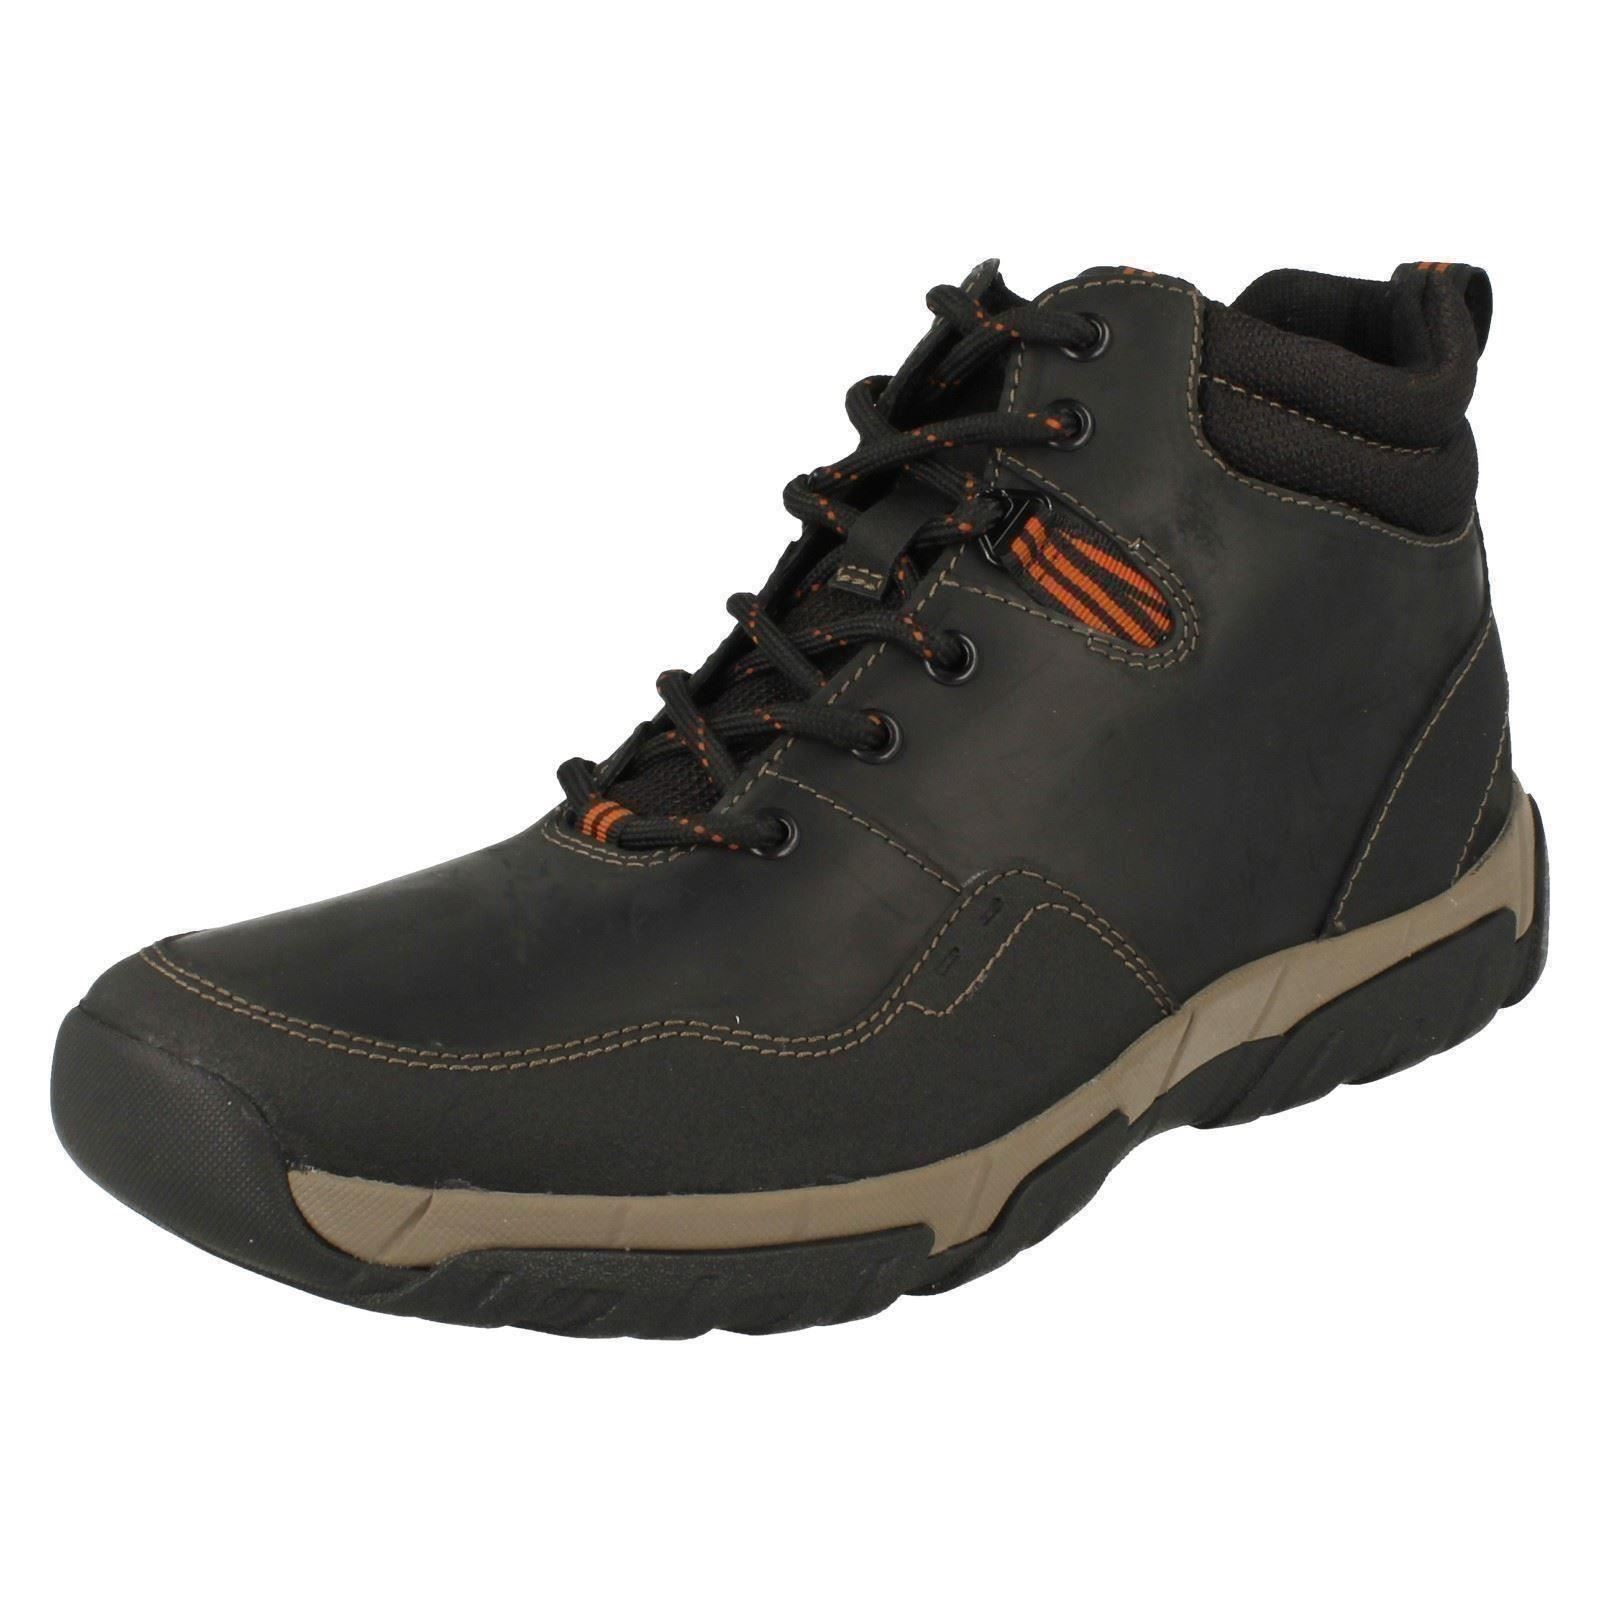 Hombre Clarks Waterproof Lace Lace Lace Up botas Walbeck Top 44f342